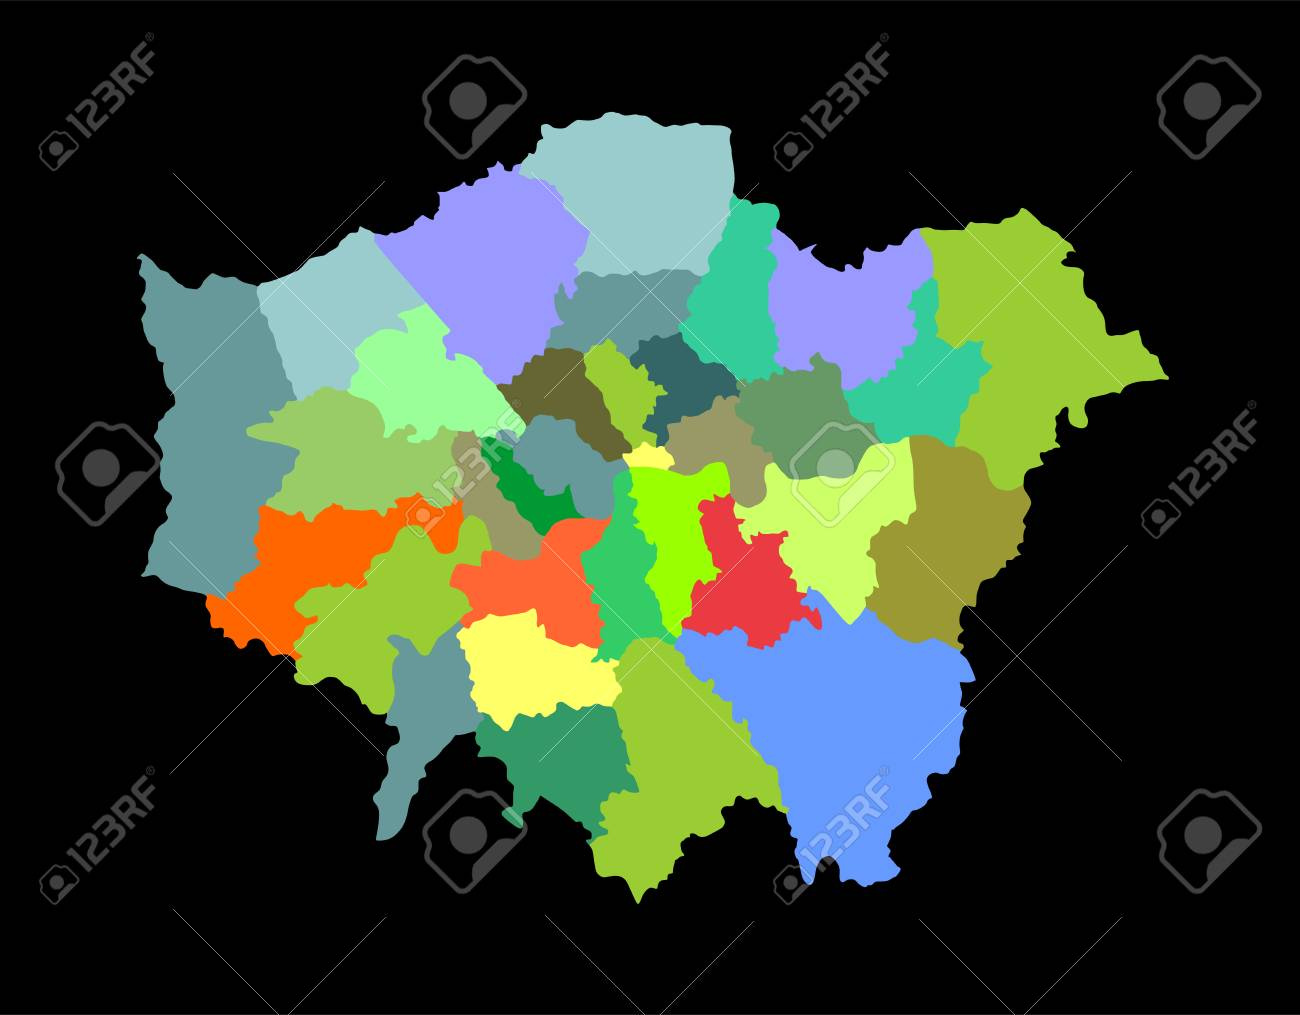 Greater London Vector Silhouette Map Isolated On Black Background